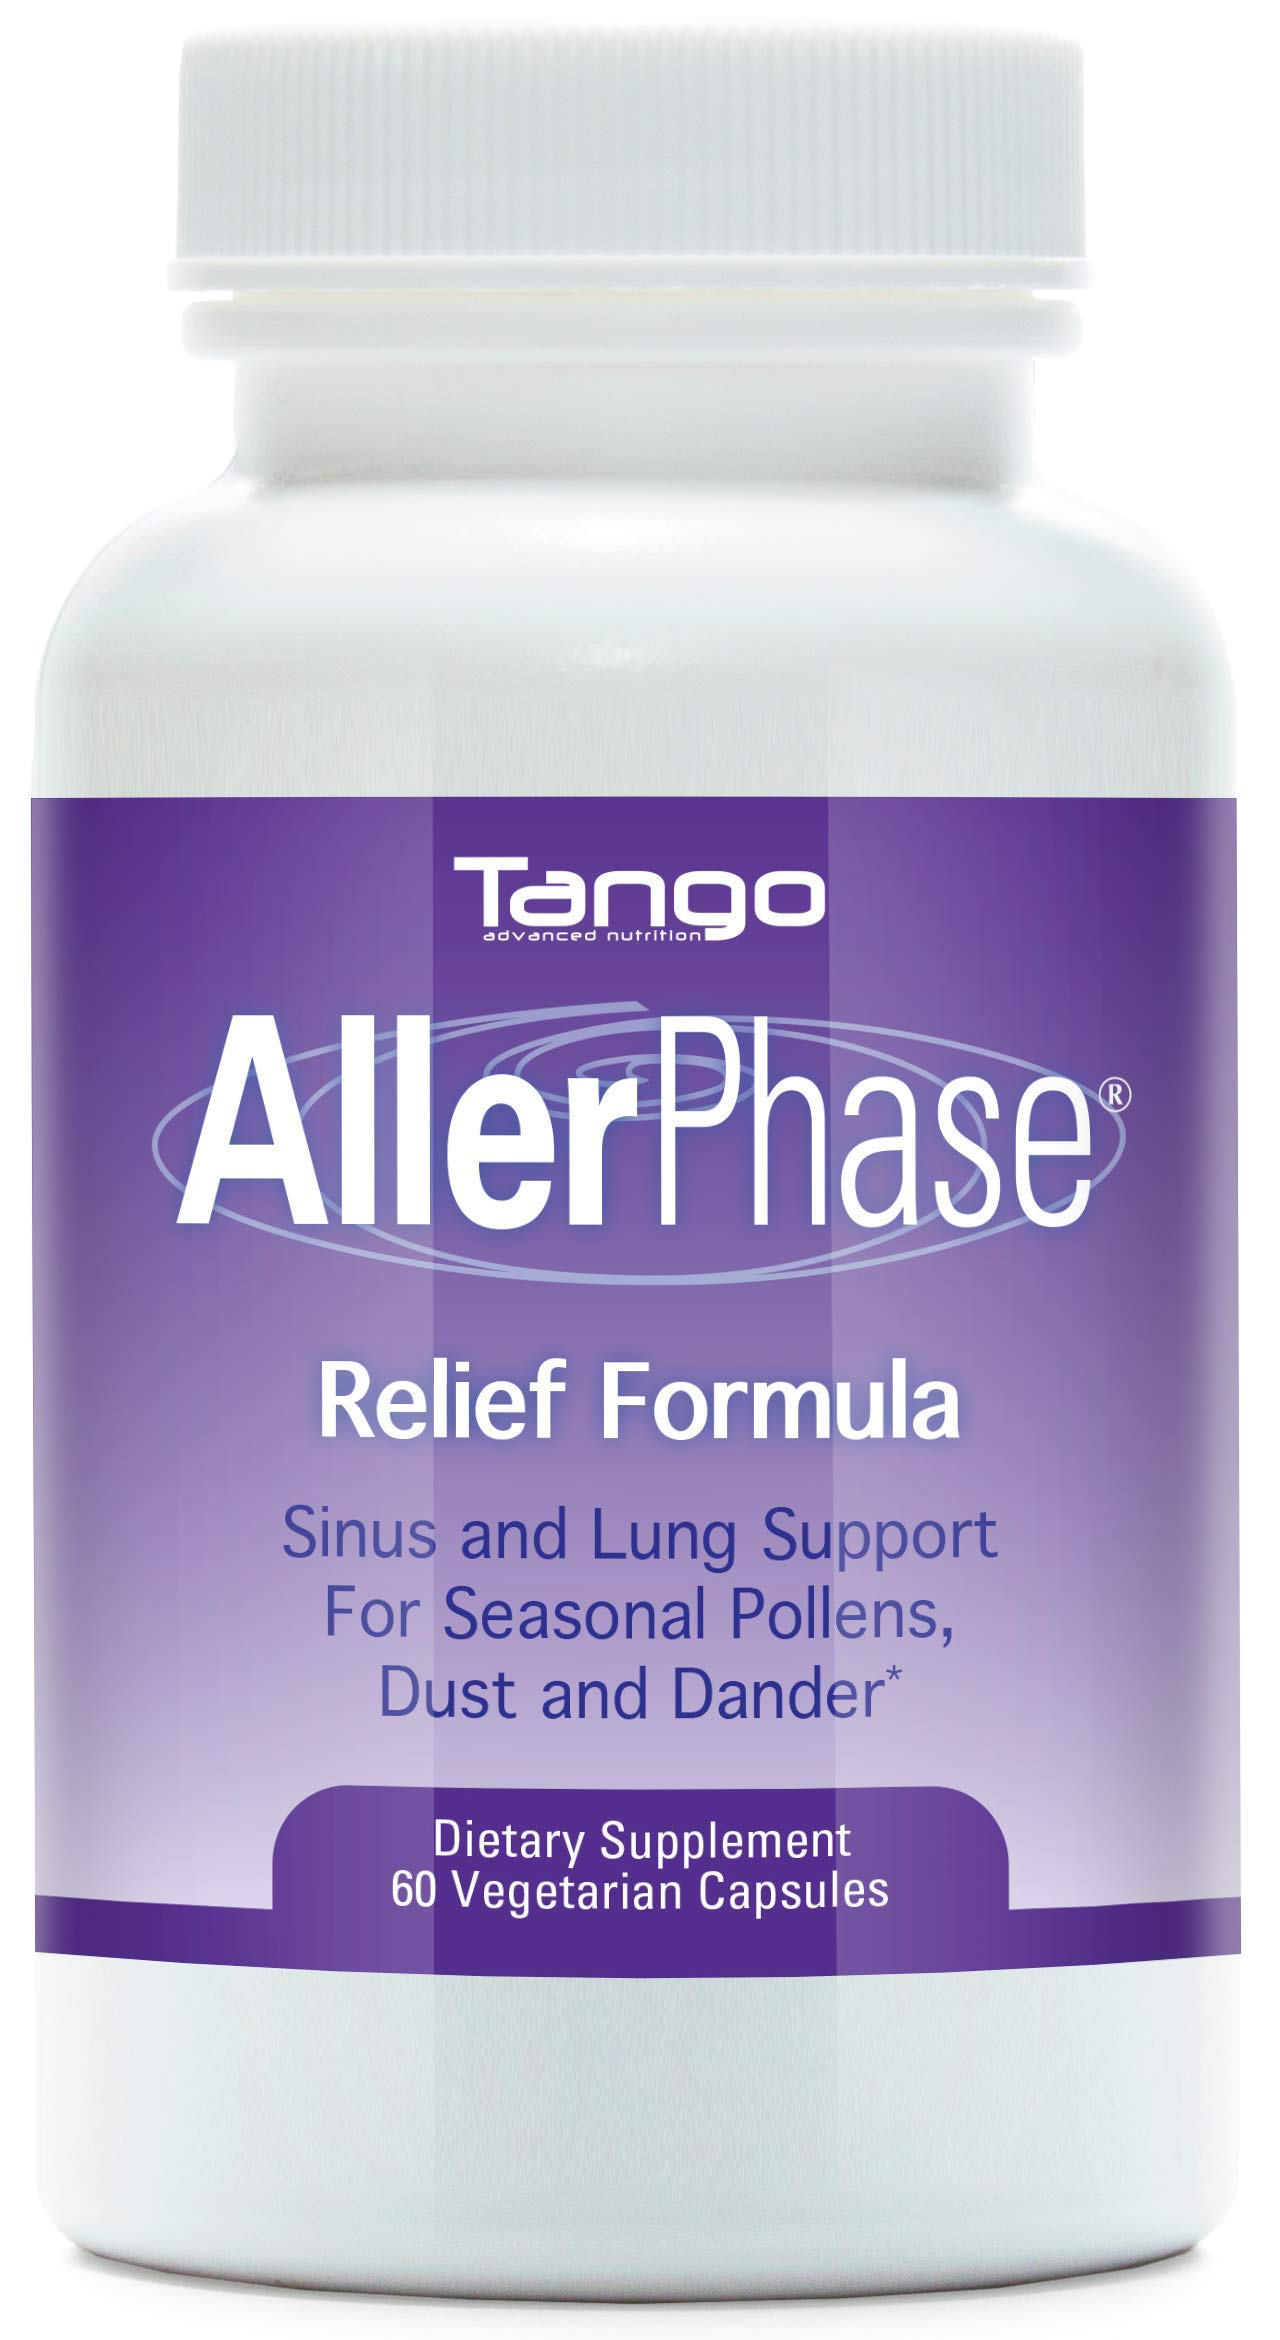 AllerPhase All-Natural Herbal Support Formula for Seasonal Respiratory Discomfort (60 caps)